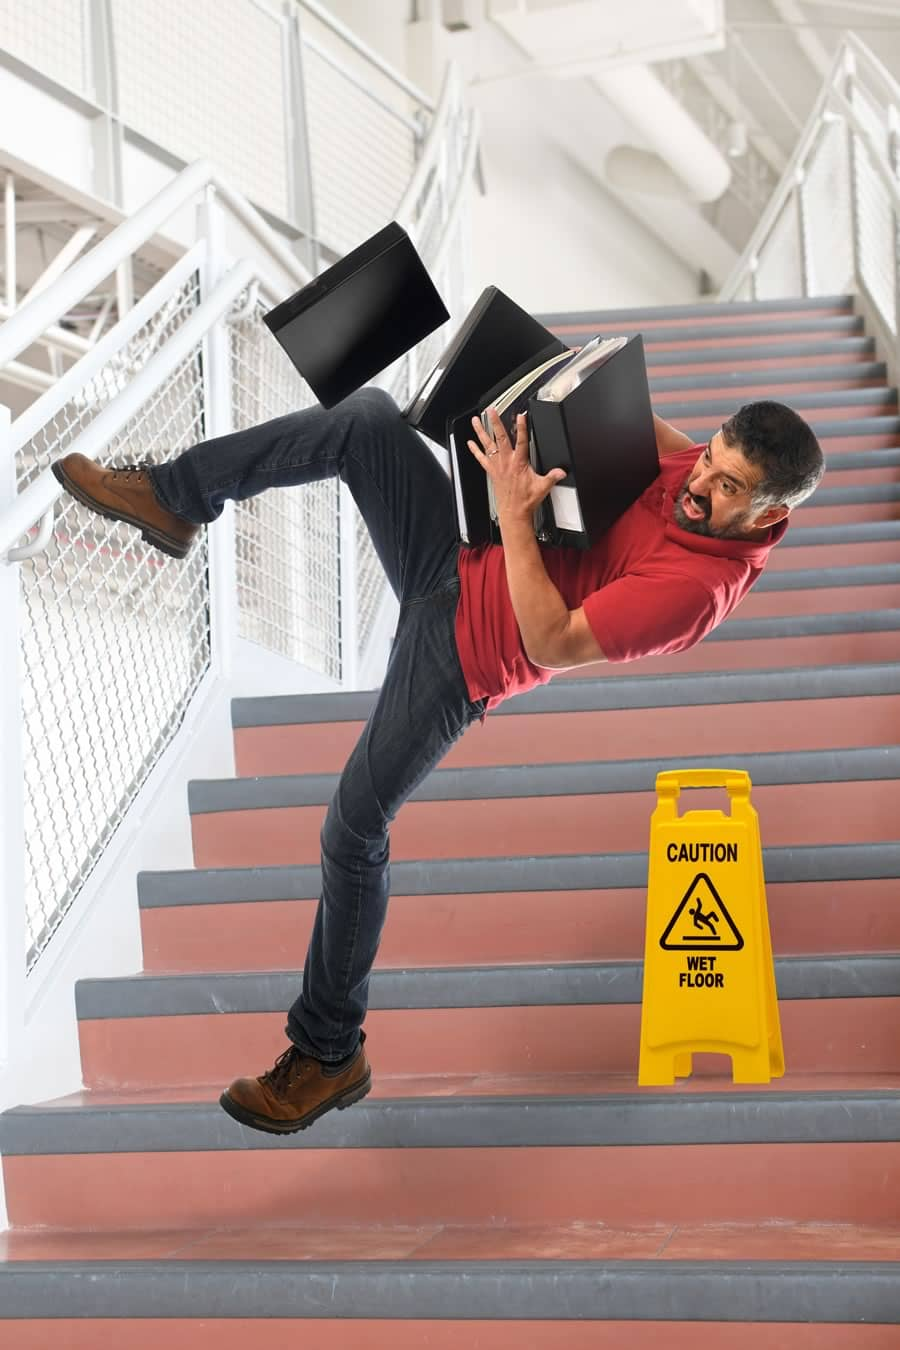 Slip and fall accident on the stairs